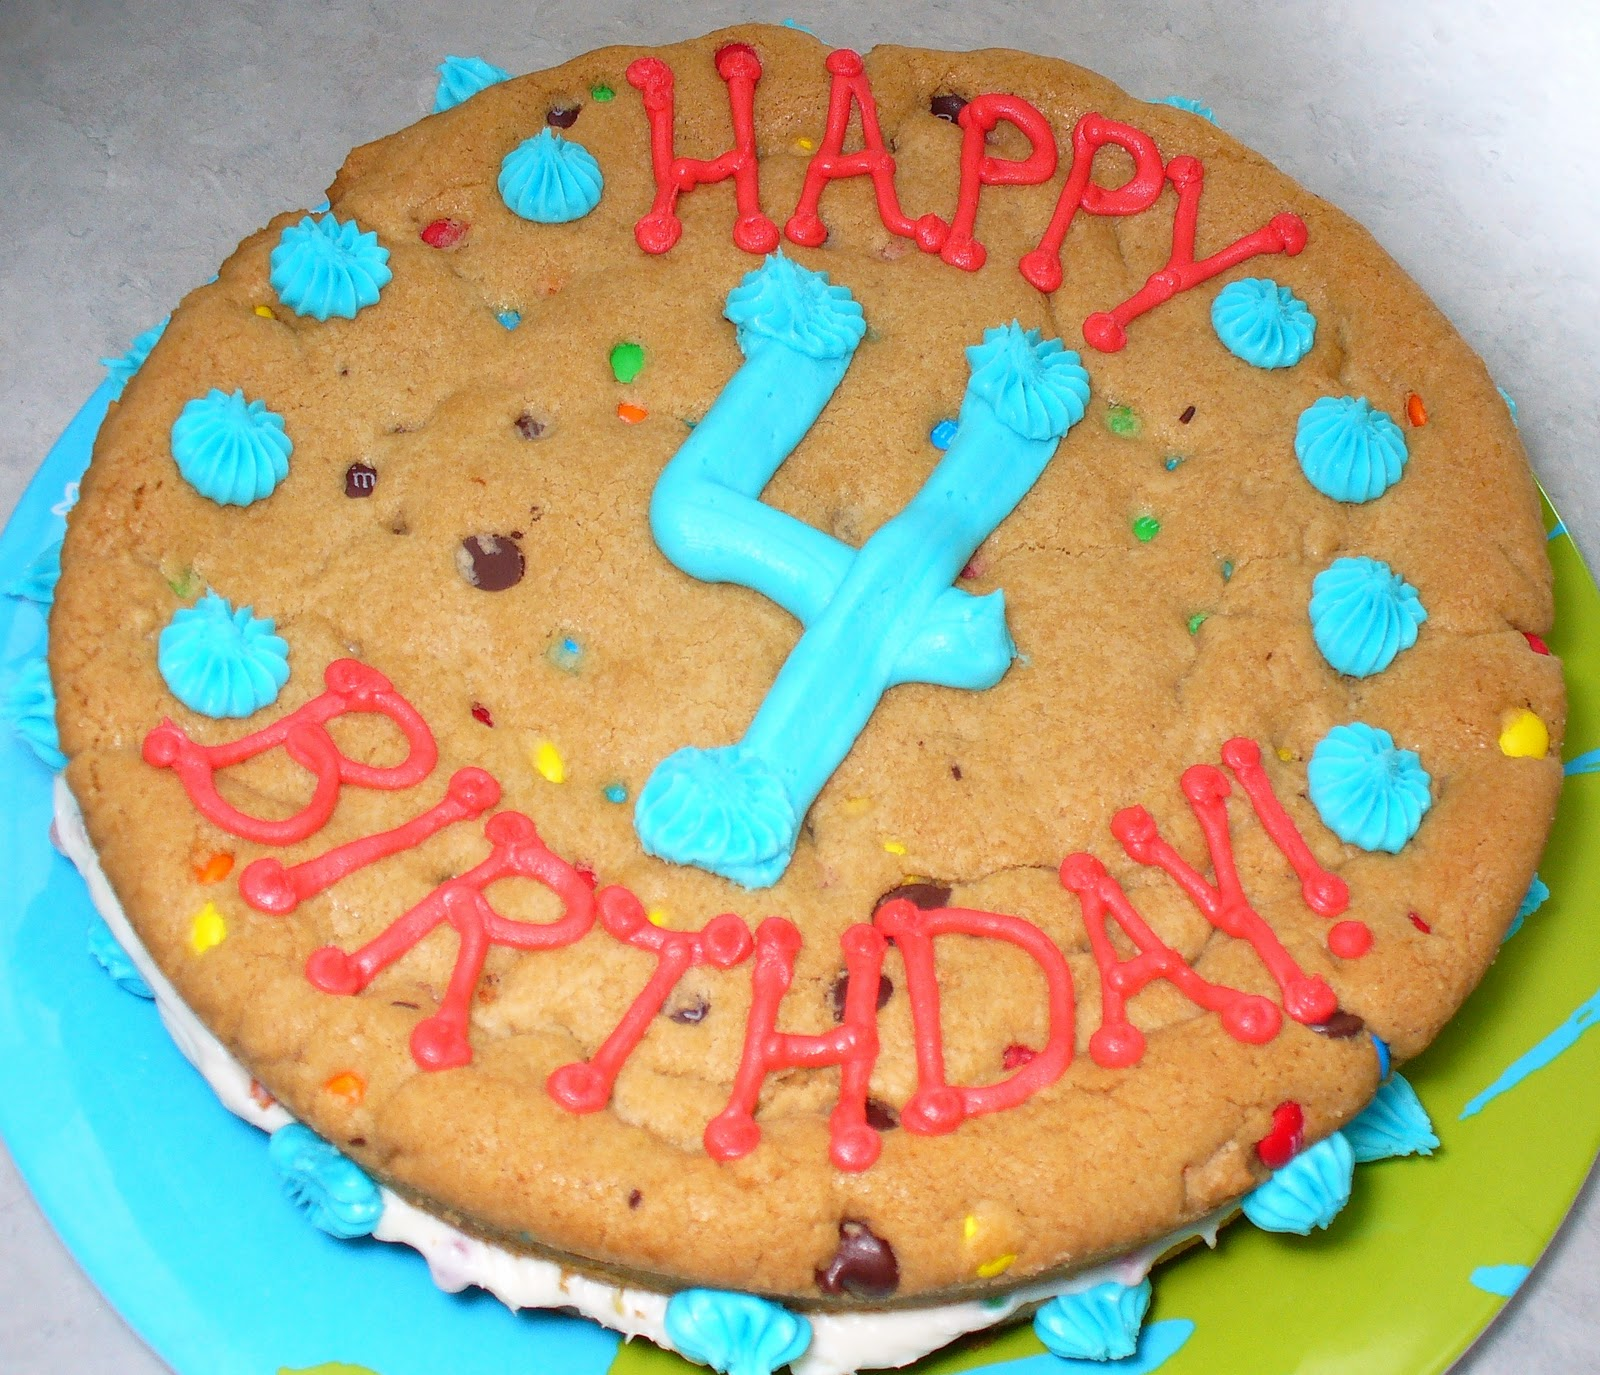 Leenee's Sweetest Delights: Giant Chocolate Chip M&M Cookie Cake